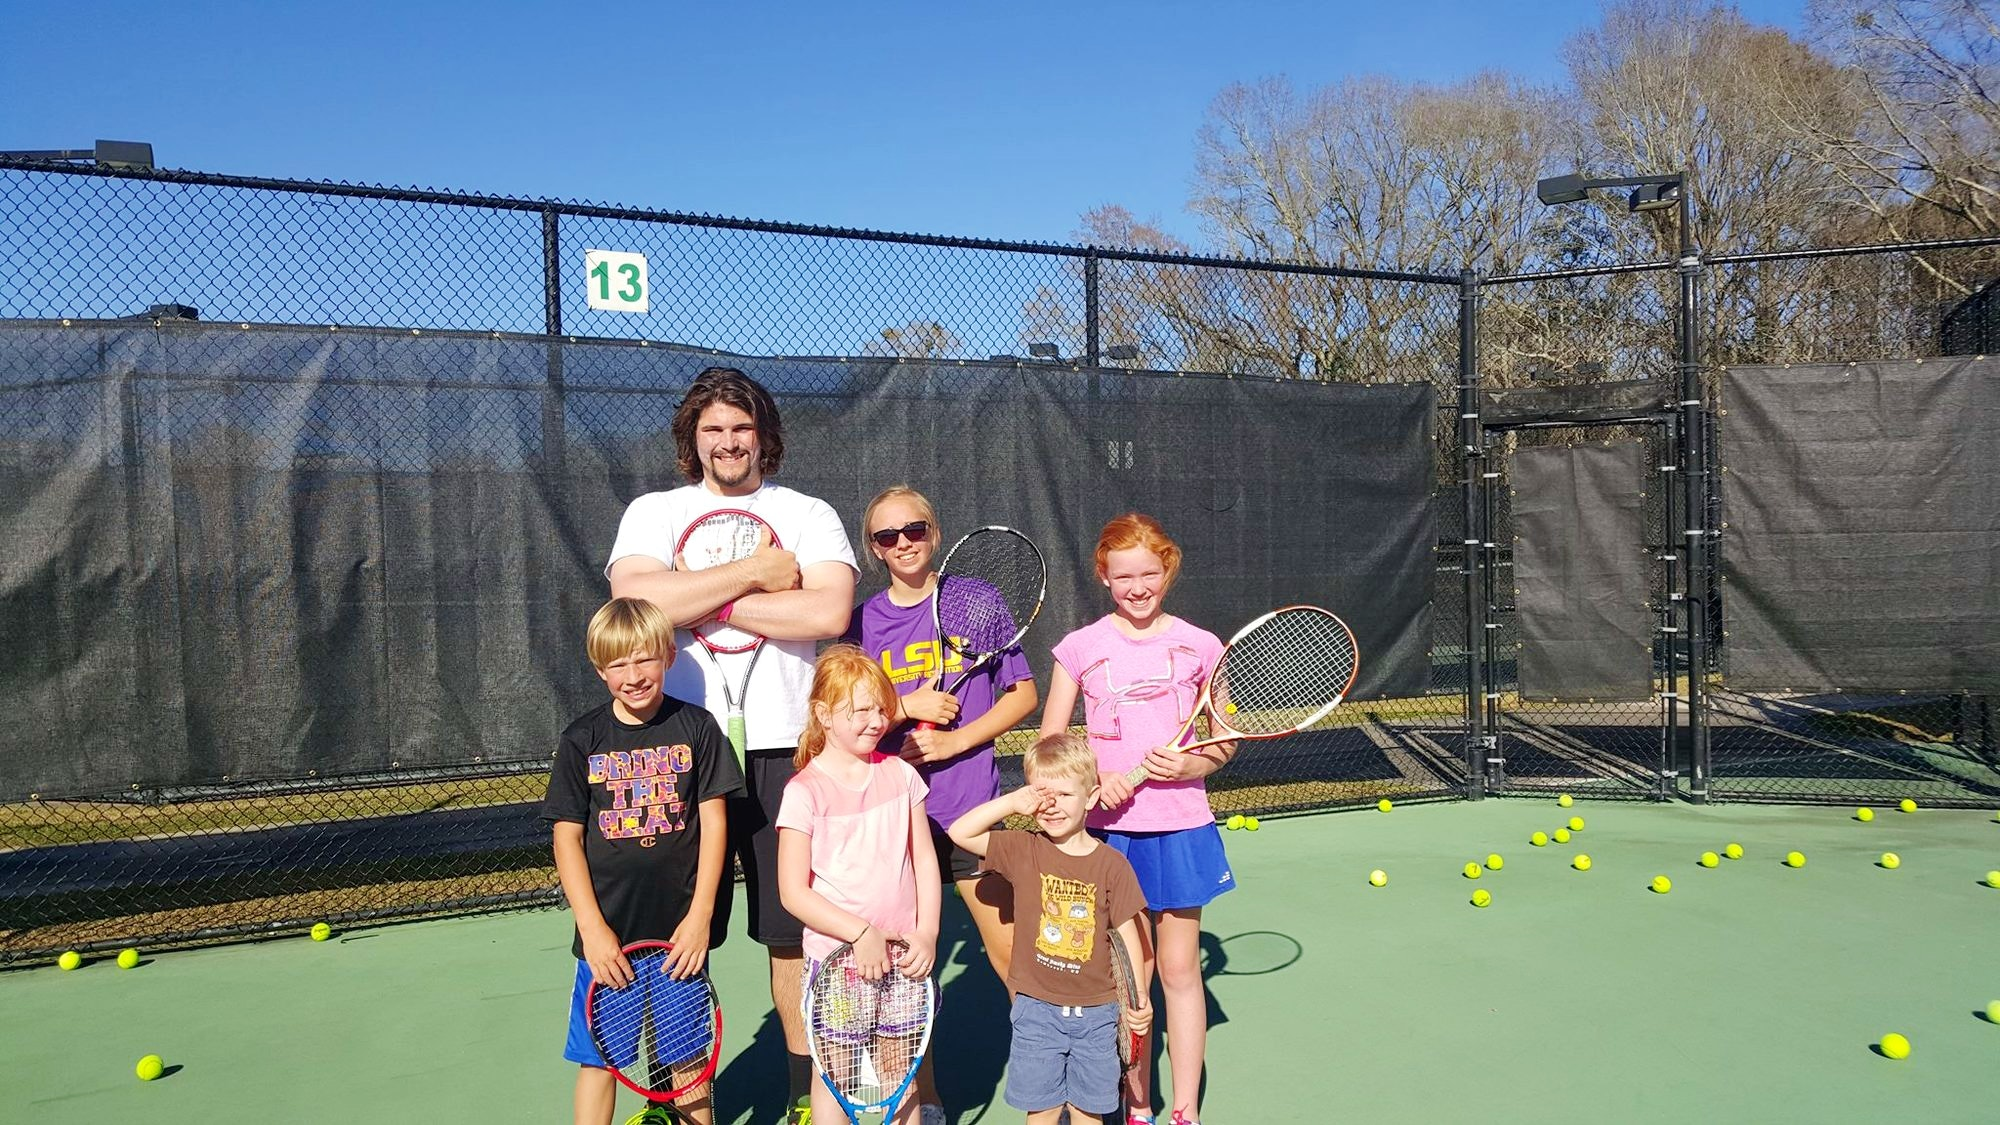 Henry A. teaches tennis lessons in Baton Rouge, LA